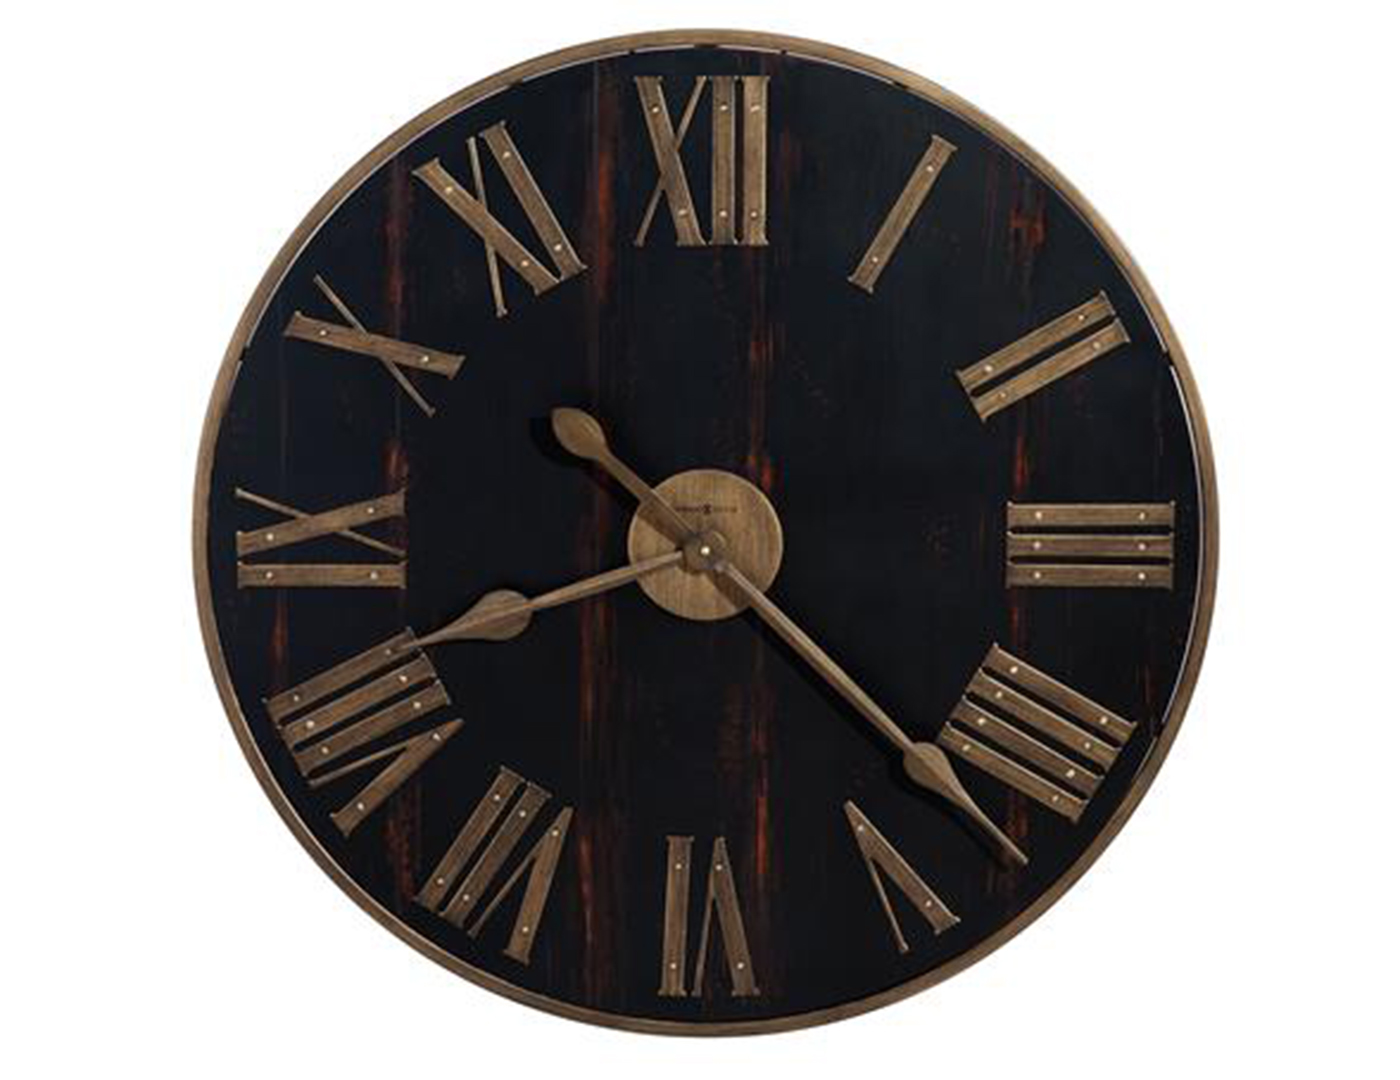 Antique Black and Brass Wall Clock